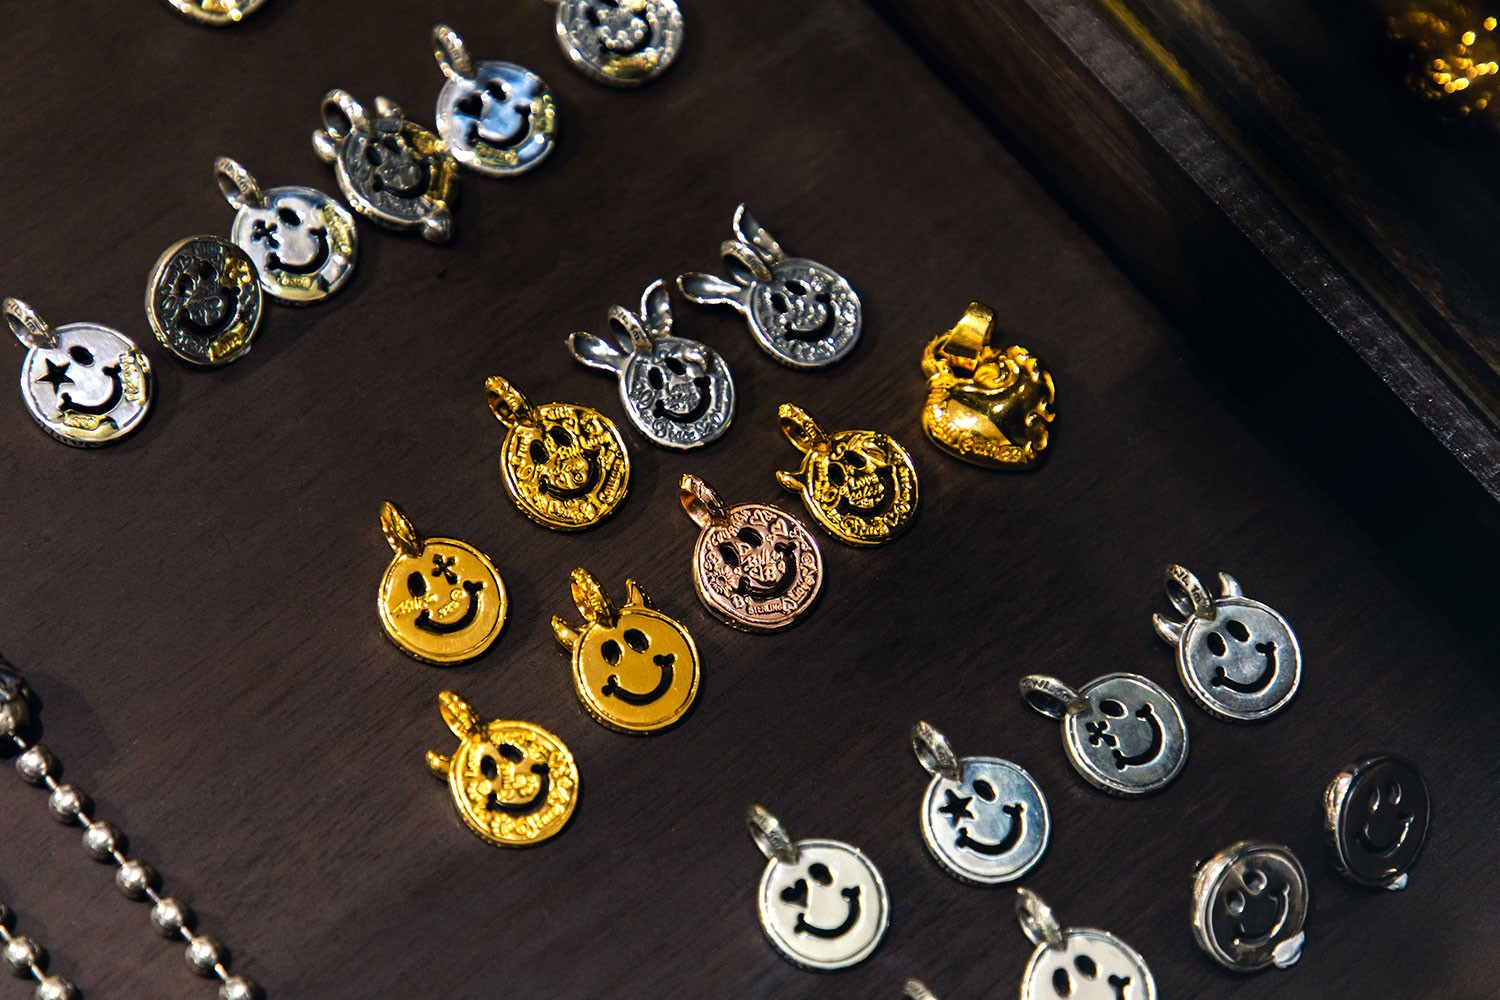 Bill Wall Leather Silver Jewelry Interview skulls vinavast Malibu silversmith Hong Kong Skulls Gold Diamond Smiley Face Silver 925 accessories rings bracelets bangles earrings